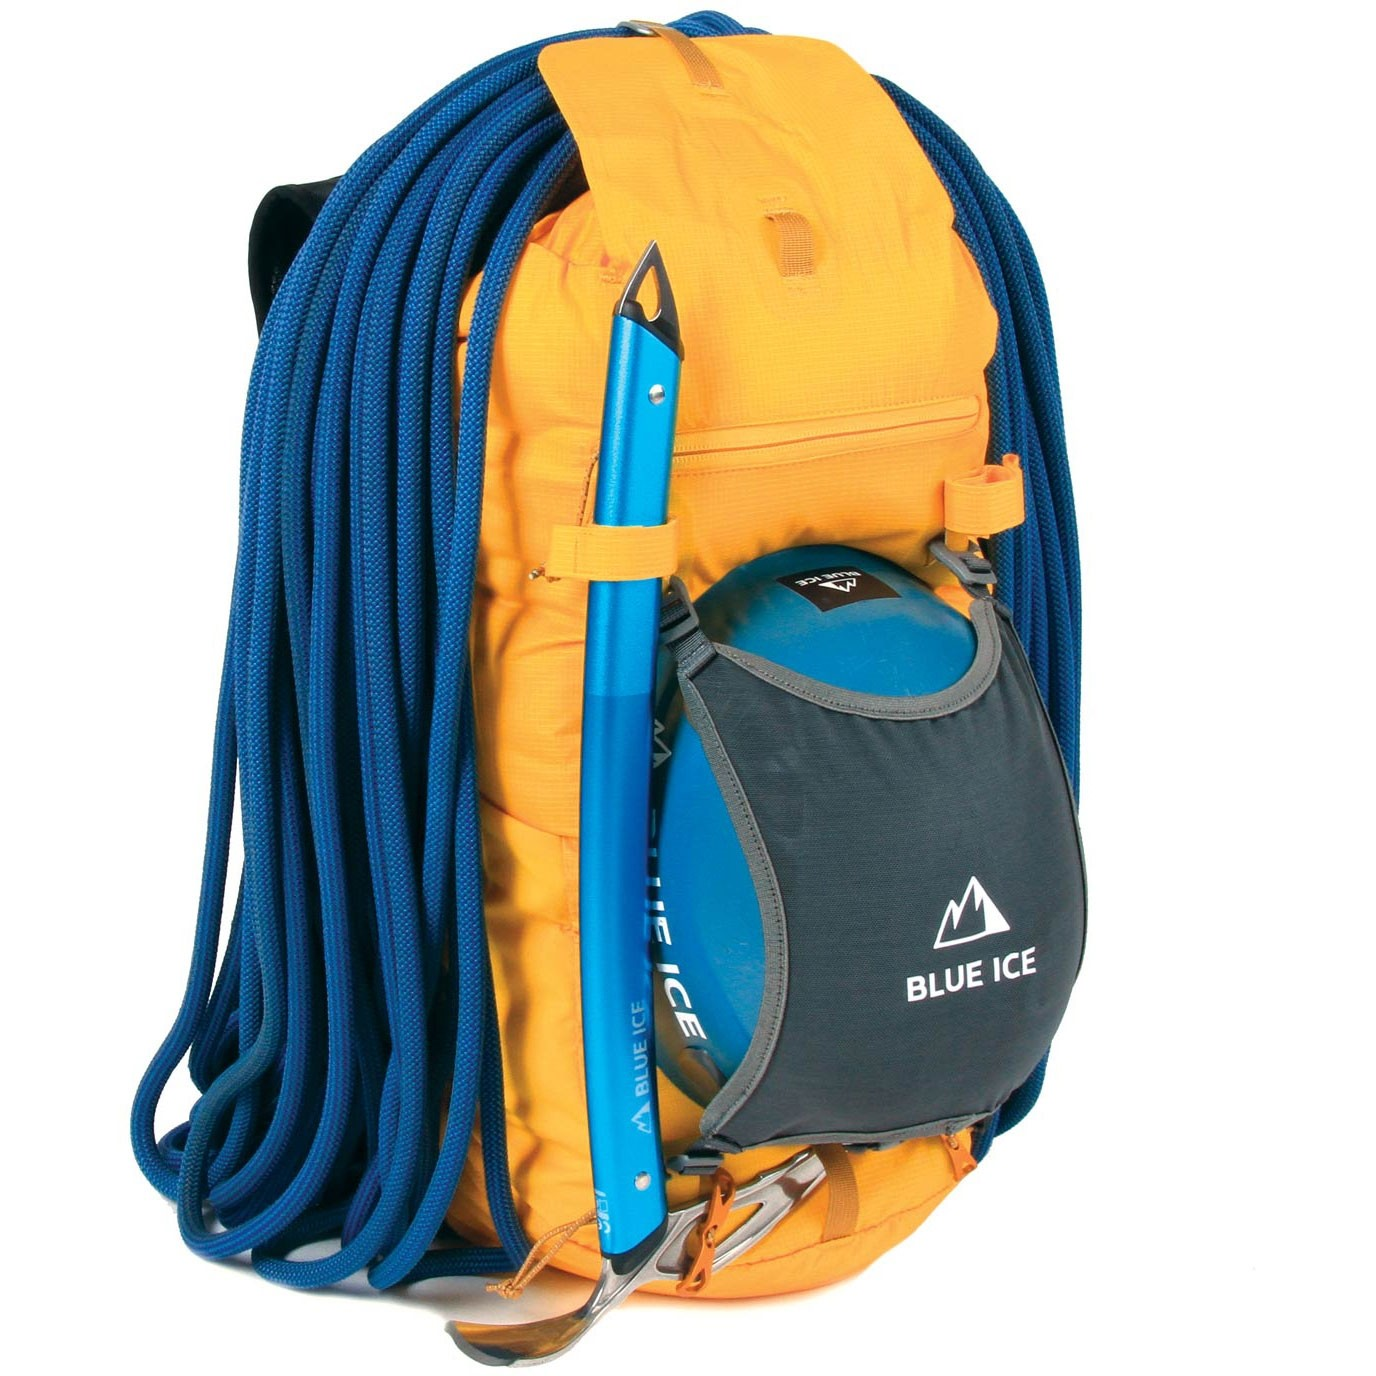 Blue Ice Dragonfly 25L Rucksack - Spectra Yellow - helmet holder rope ice axe